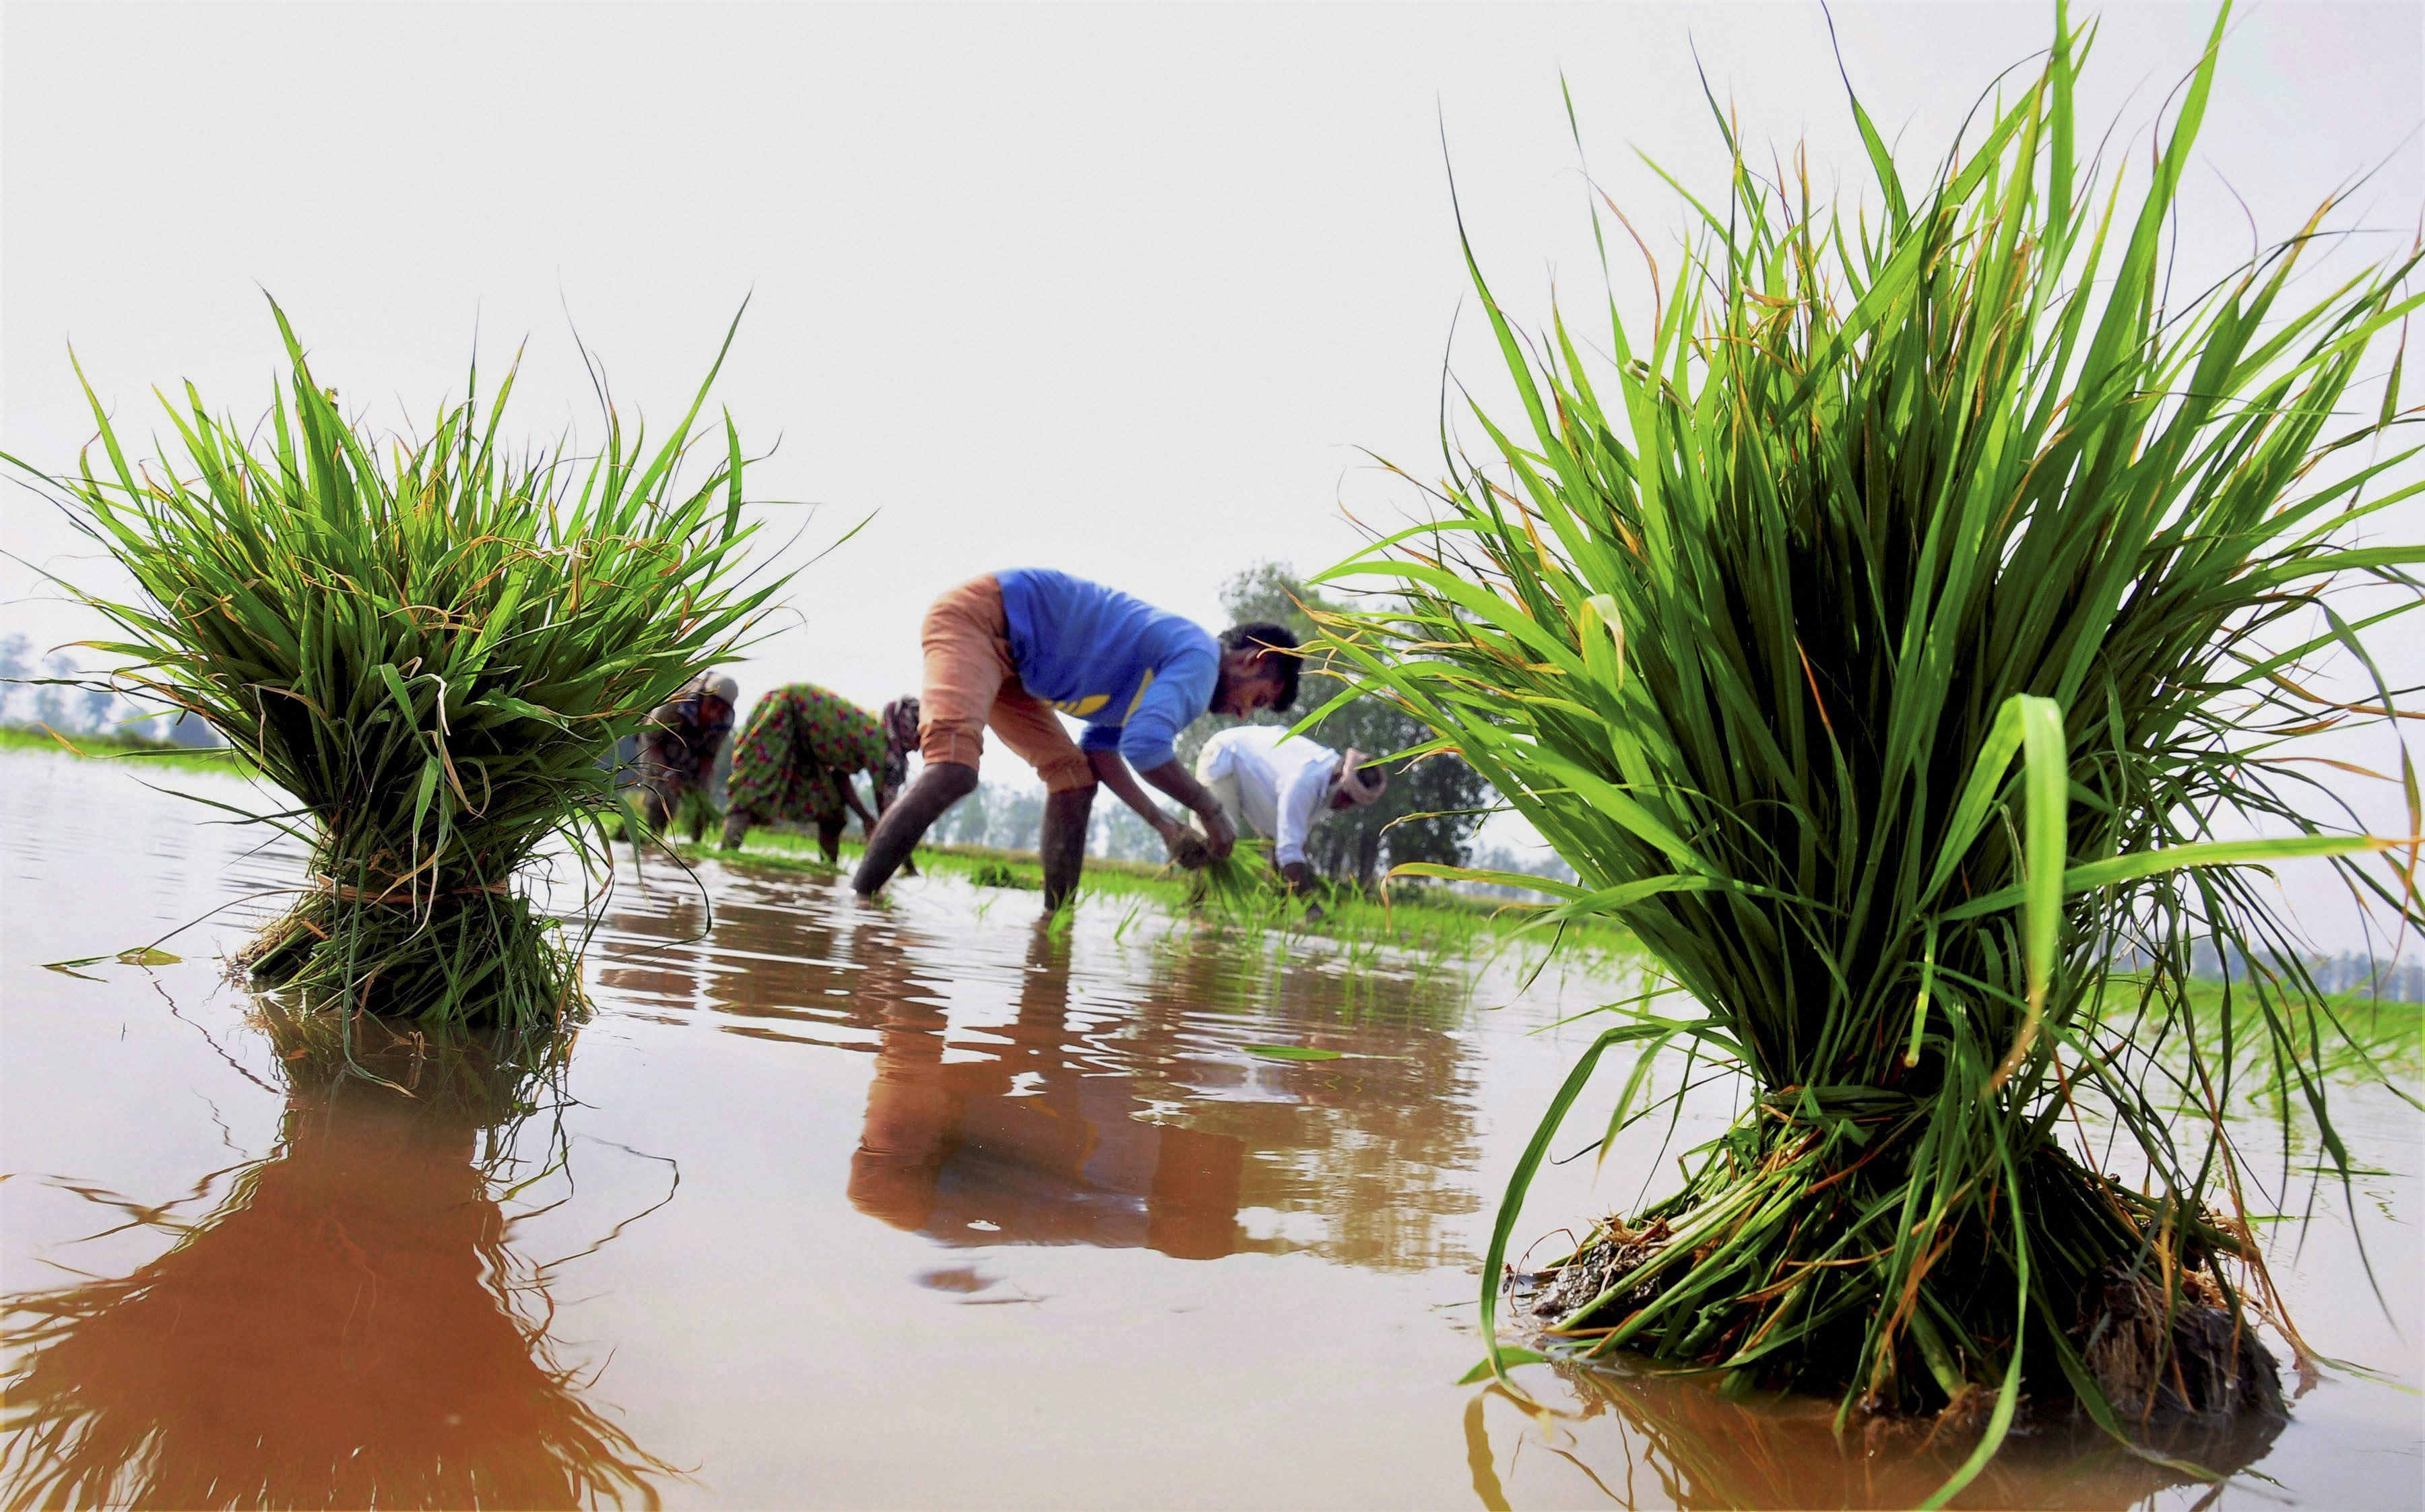 Amritsar: Farmers plant paddy seedlings in a field in a village near Amritsar on Friday. PTI Photo (PTI6_16_2017_000065B)